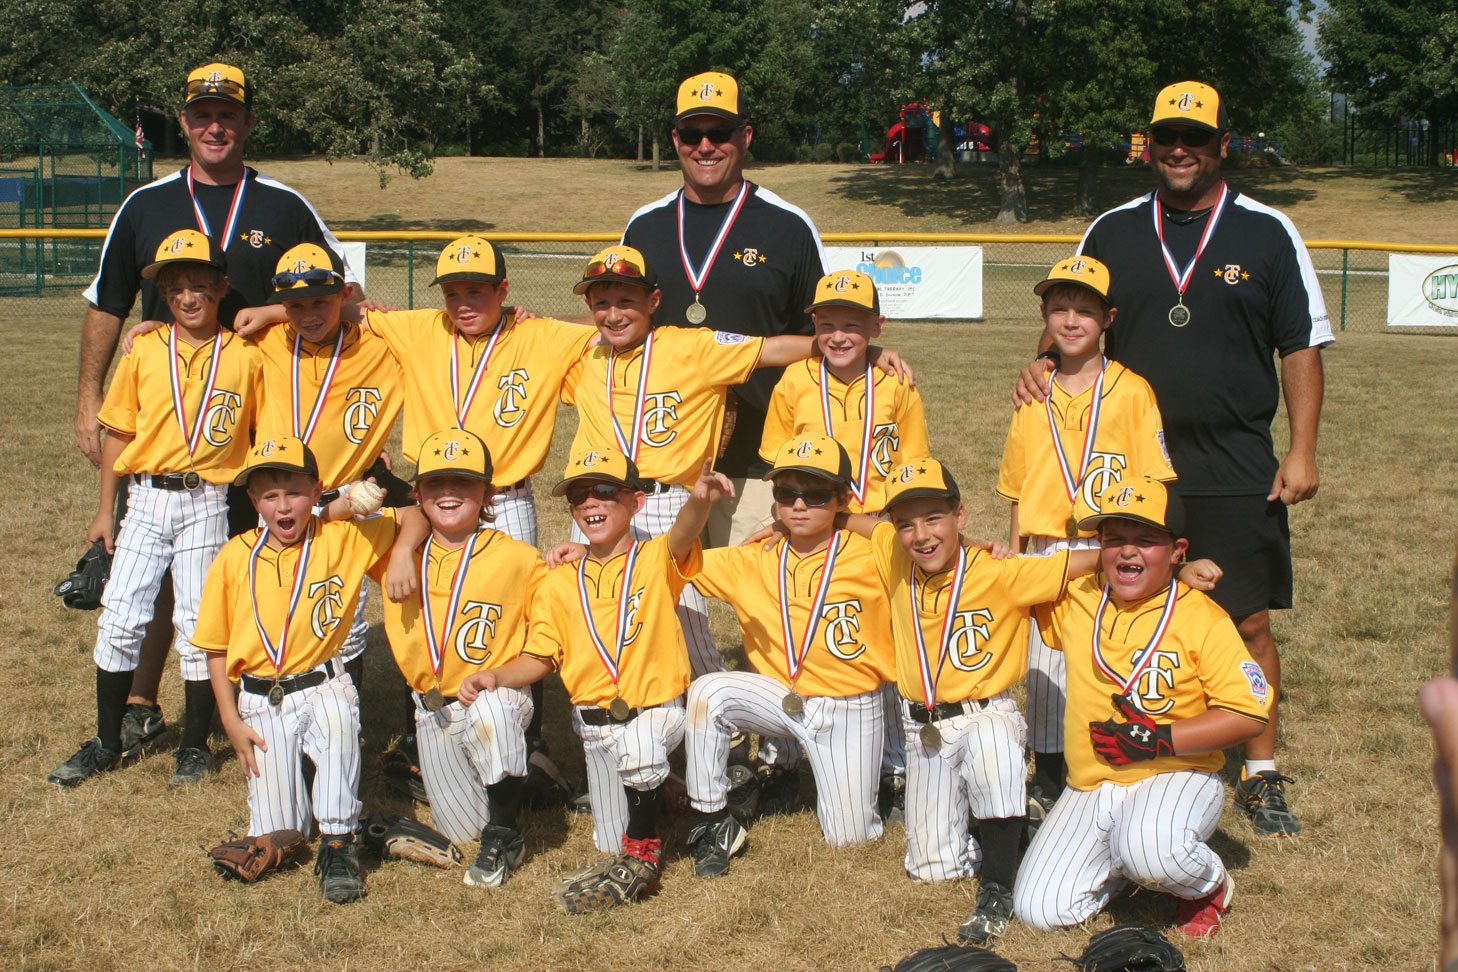 8U Medals